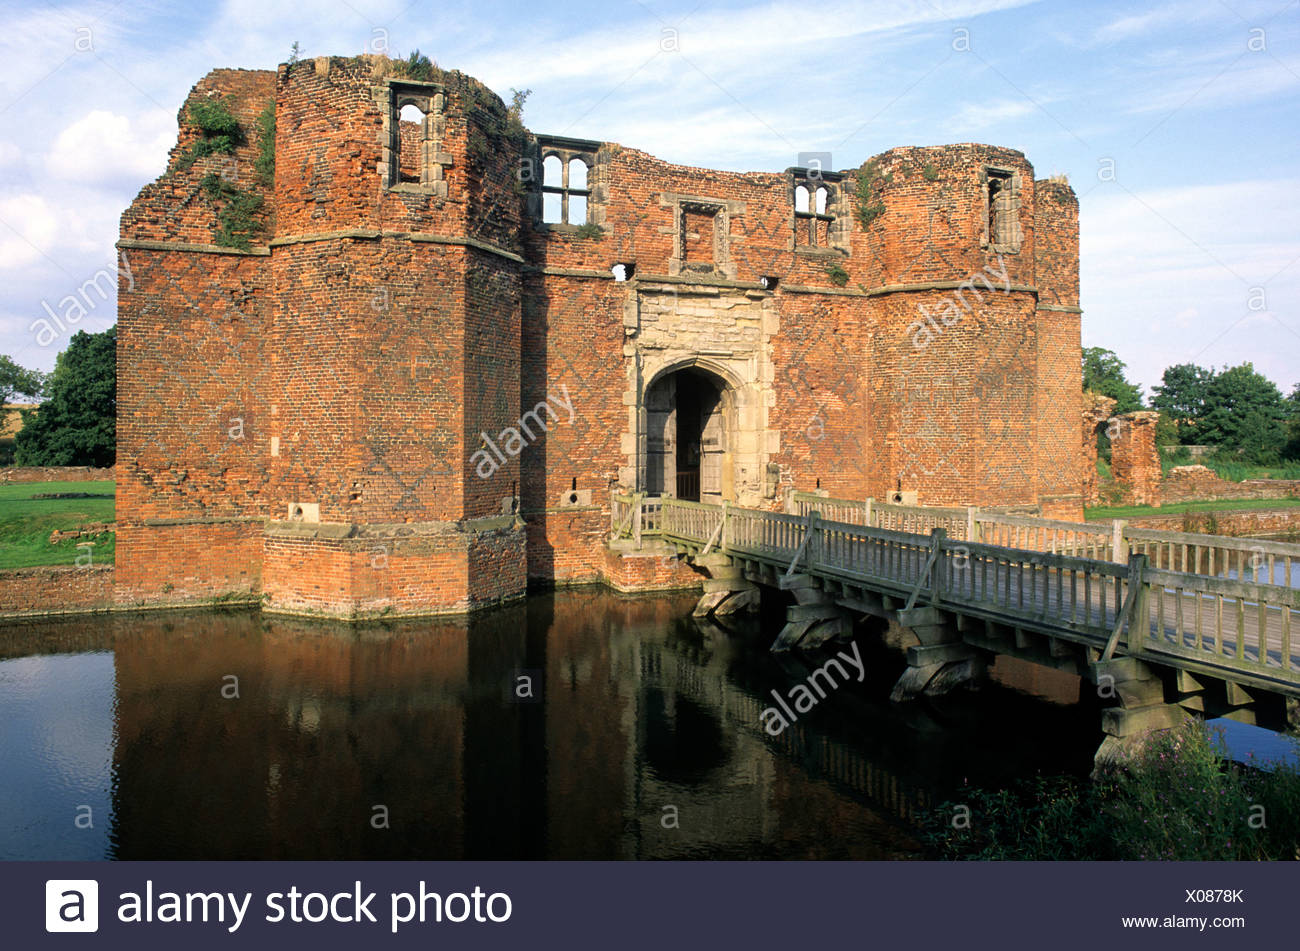 Kirby Muxloe Castle, Leicestershire, gatehouse English medieval castles moat moats England UK  gatehouses bridge - Stock Image